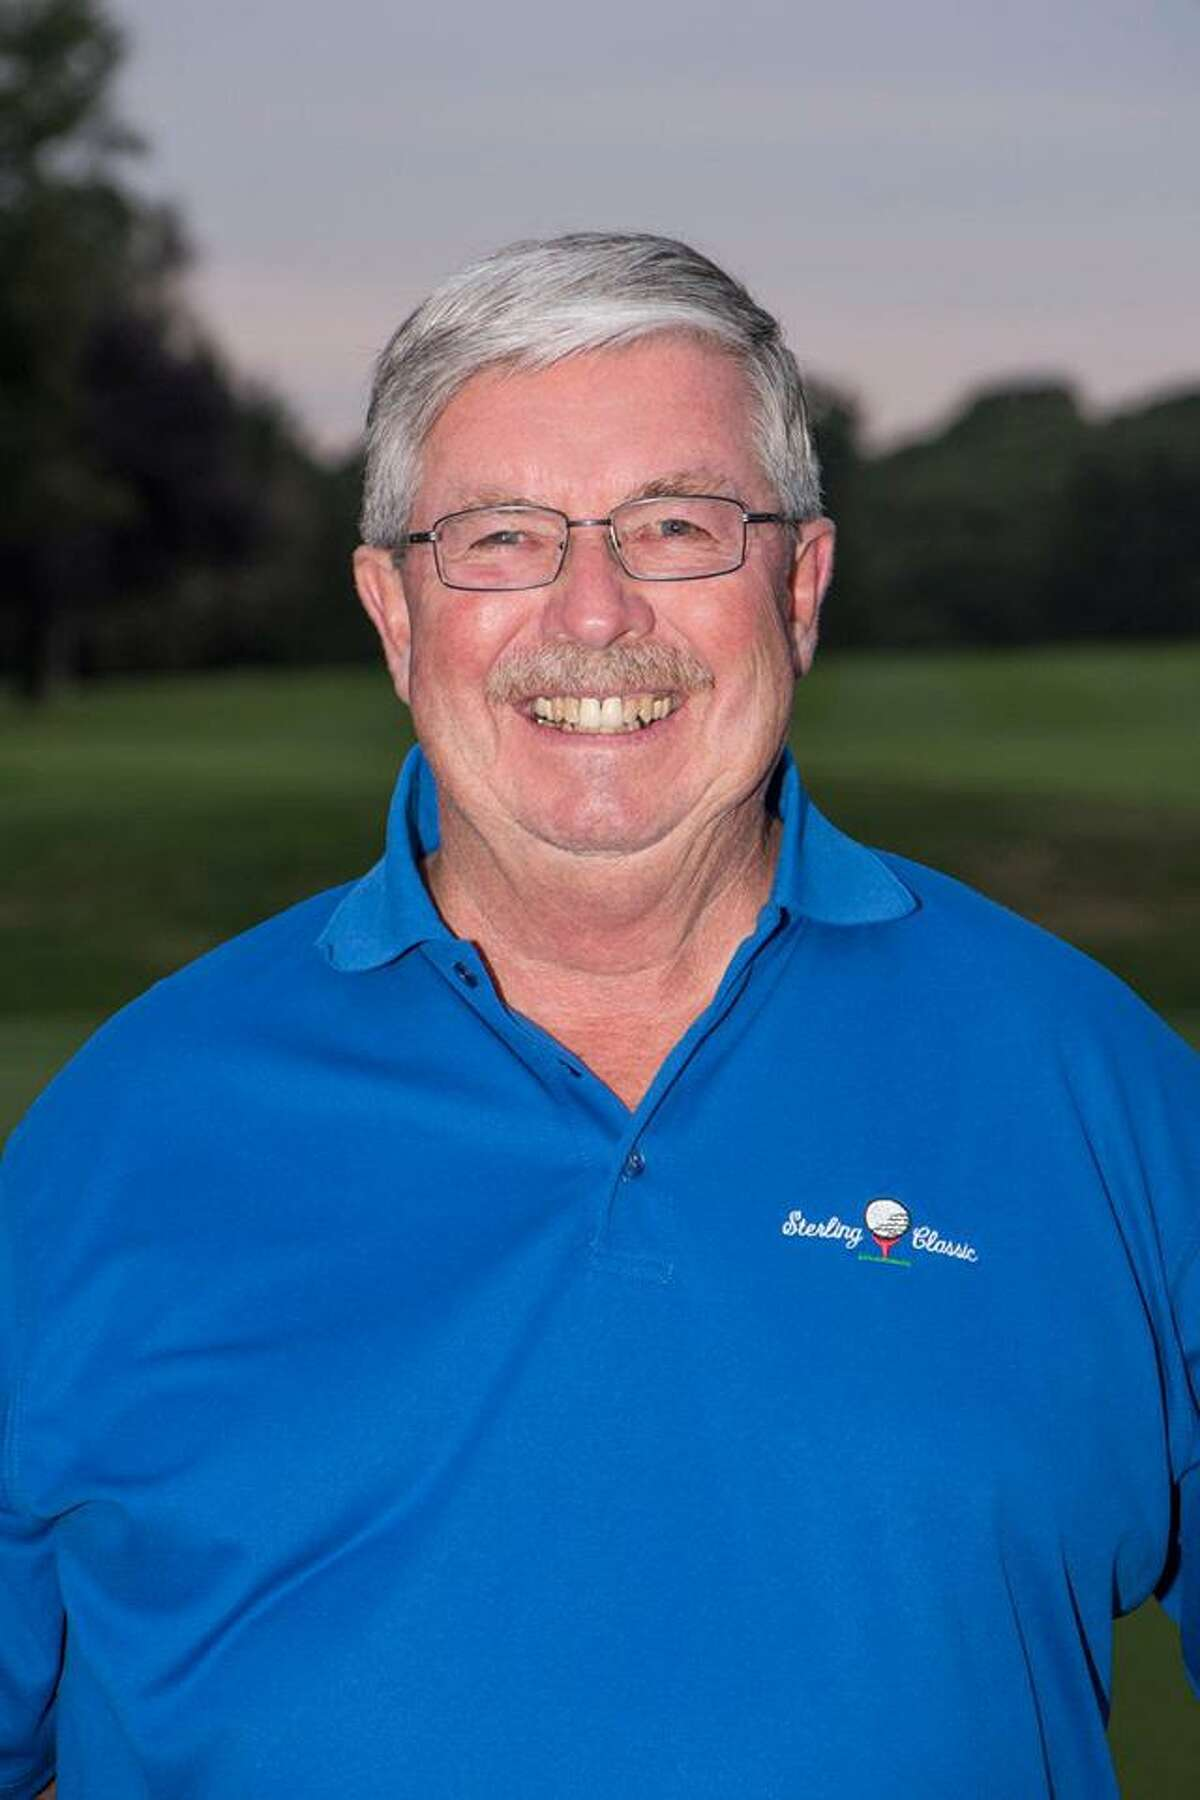 Bill O'Brien, councilman for the ninth district, is retiring from his full-time position as the Senior Director of Athletics and Facilities at the Sterling House Community Center after over 40 years of service.